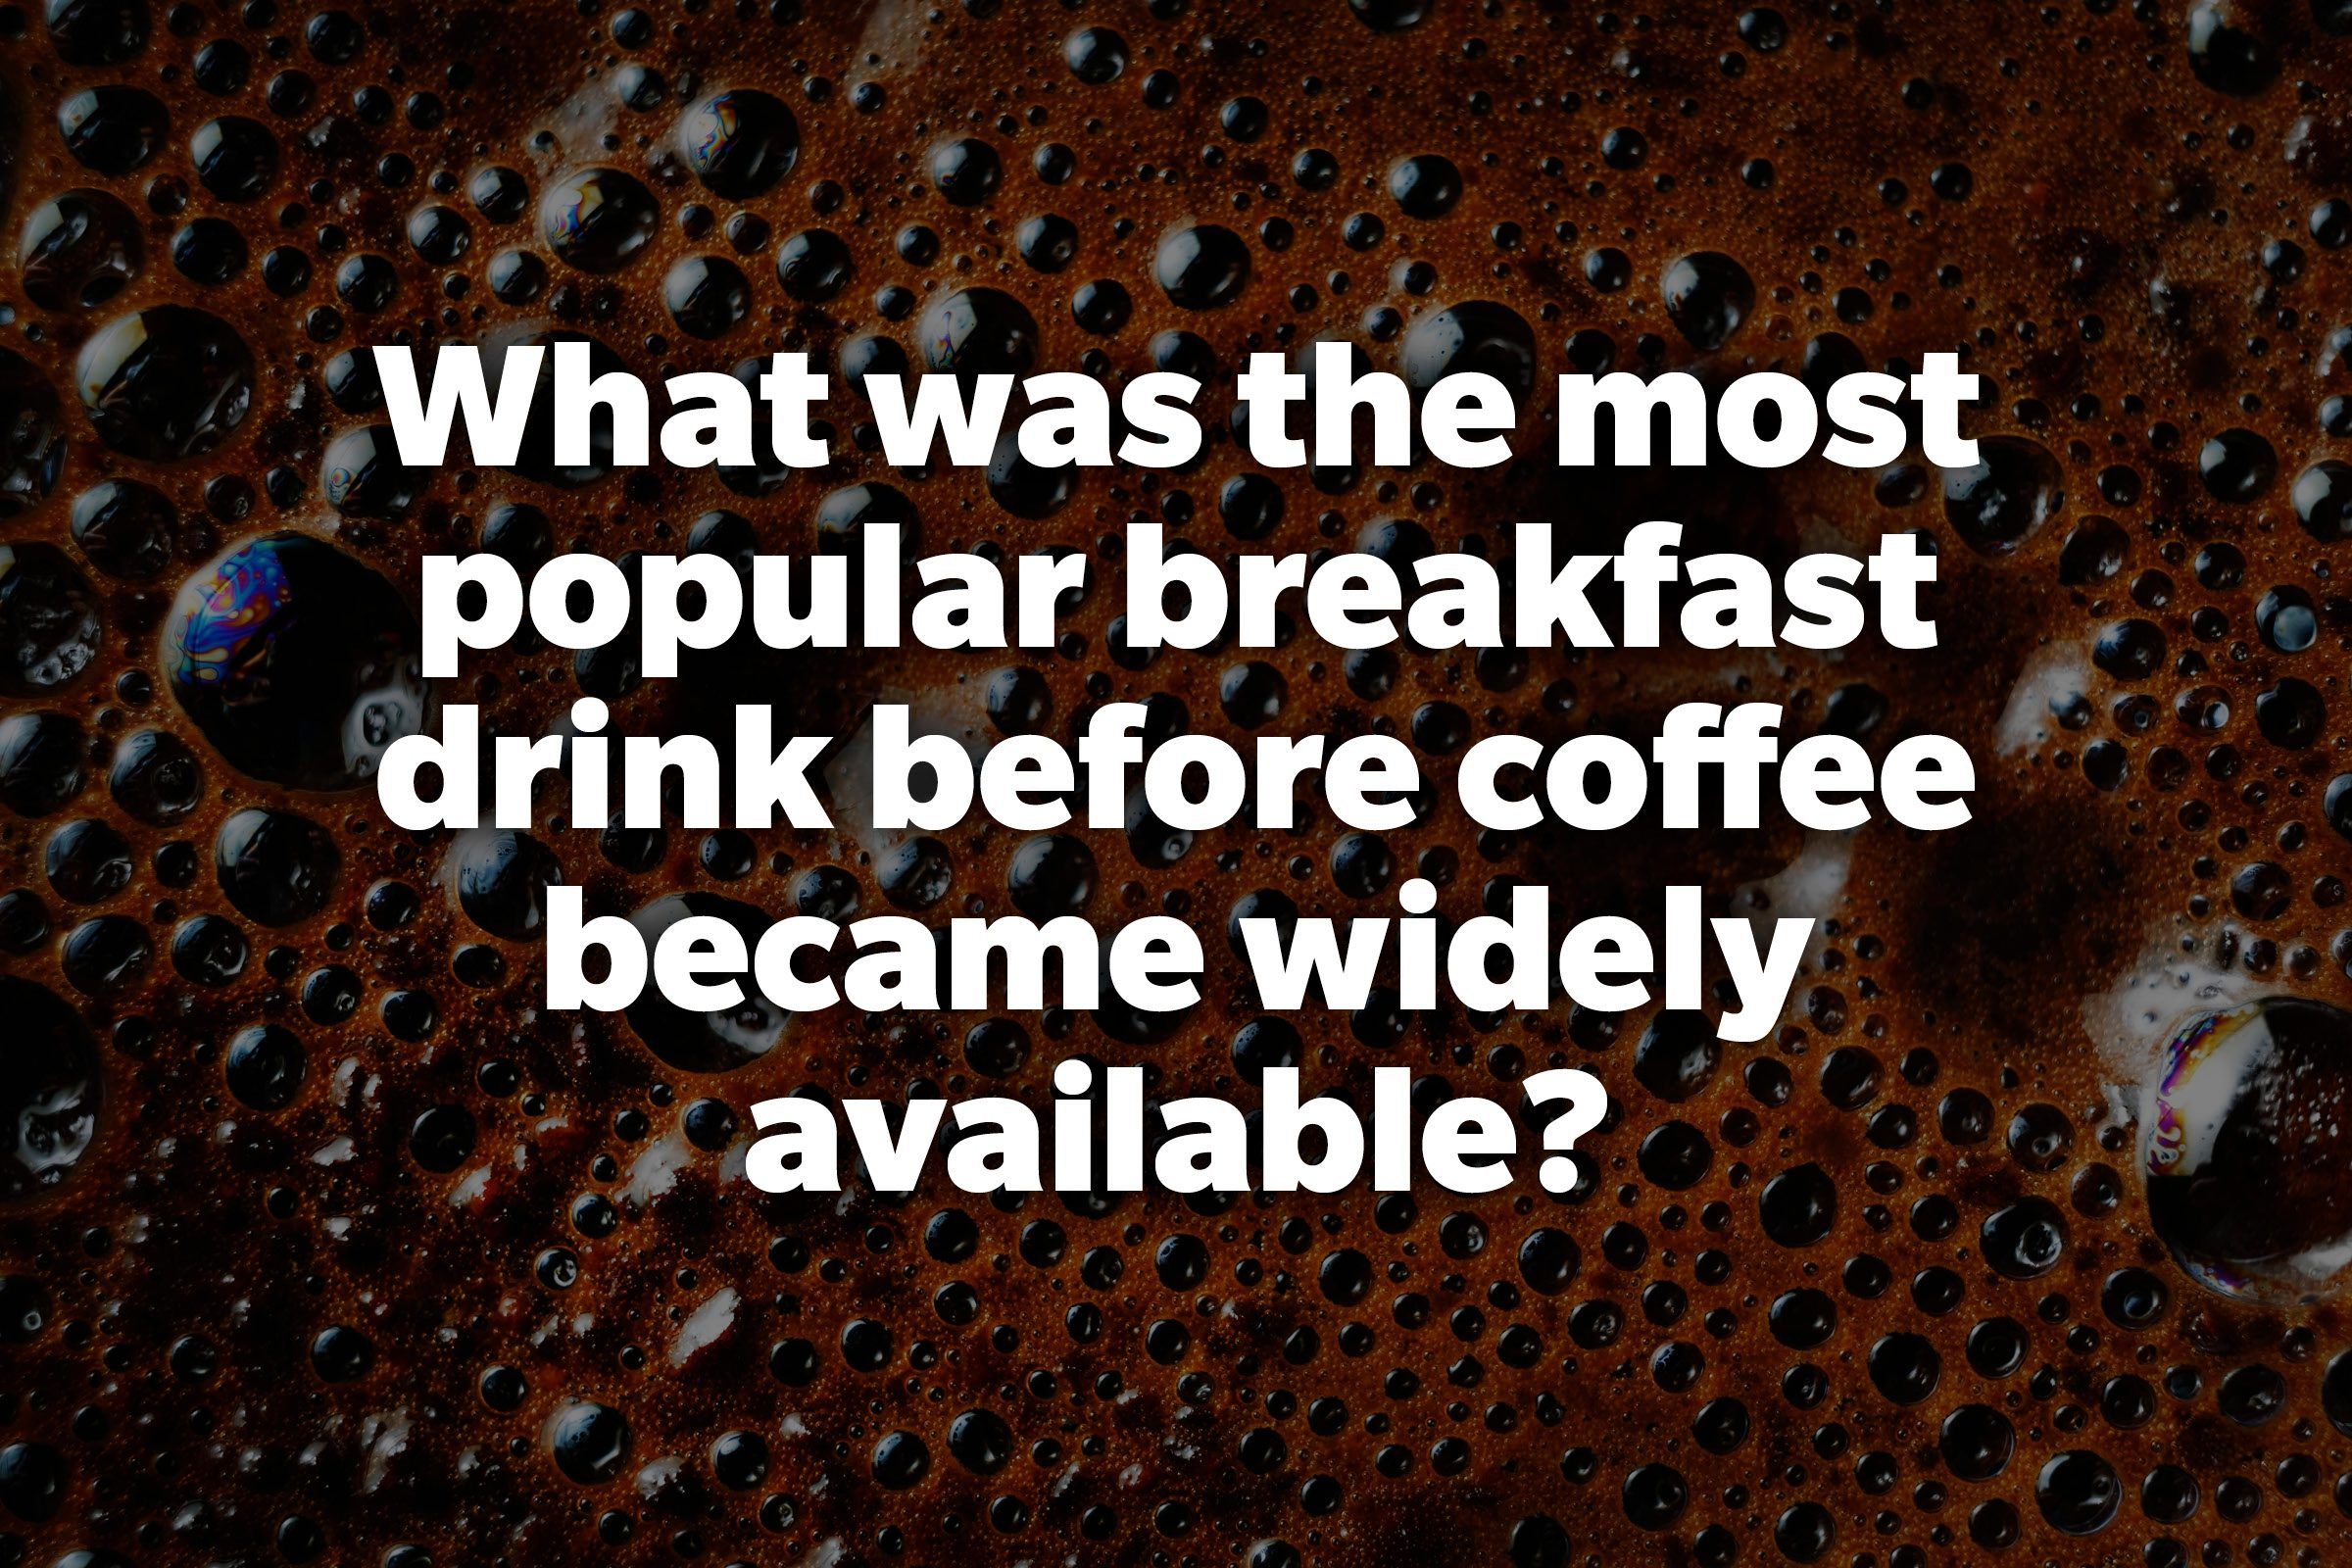 What was the most popular breakfast drink before coffee became widely available?